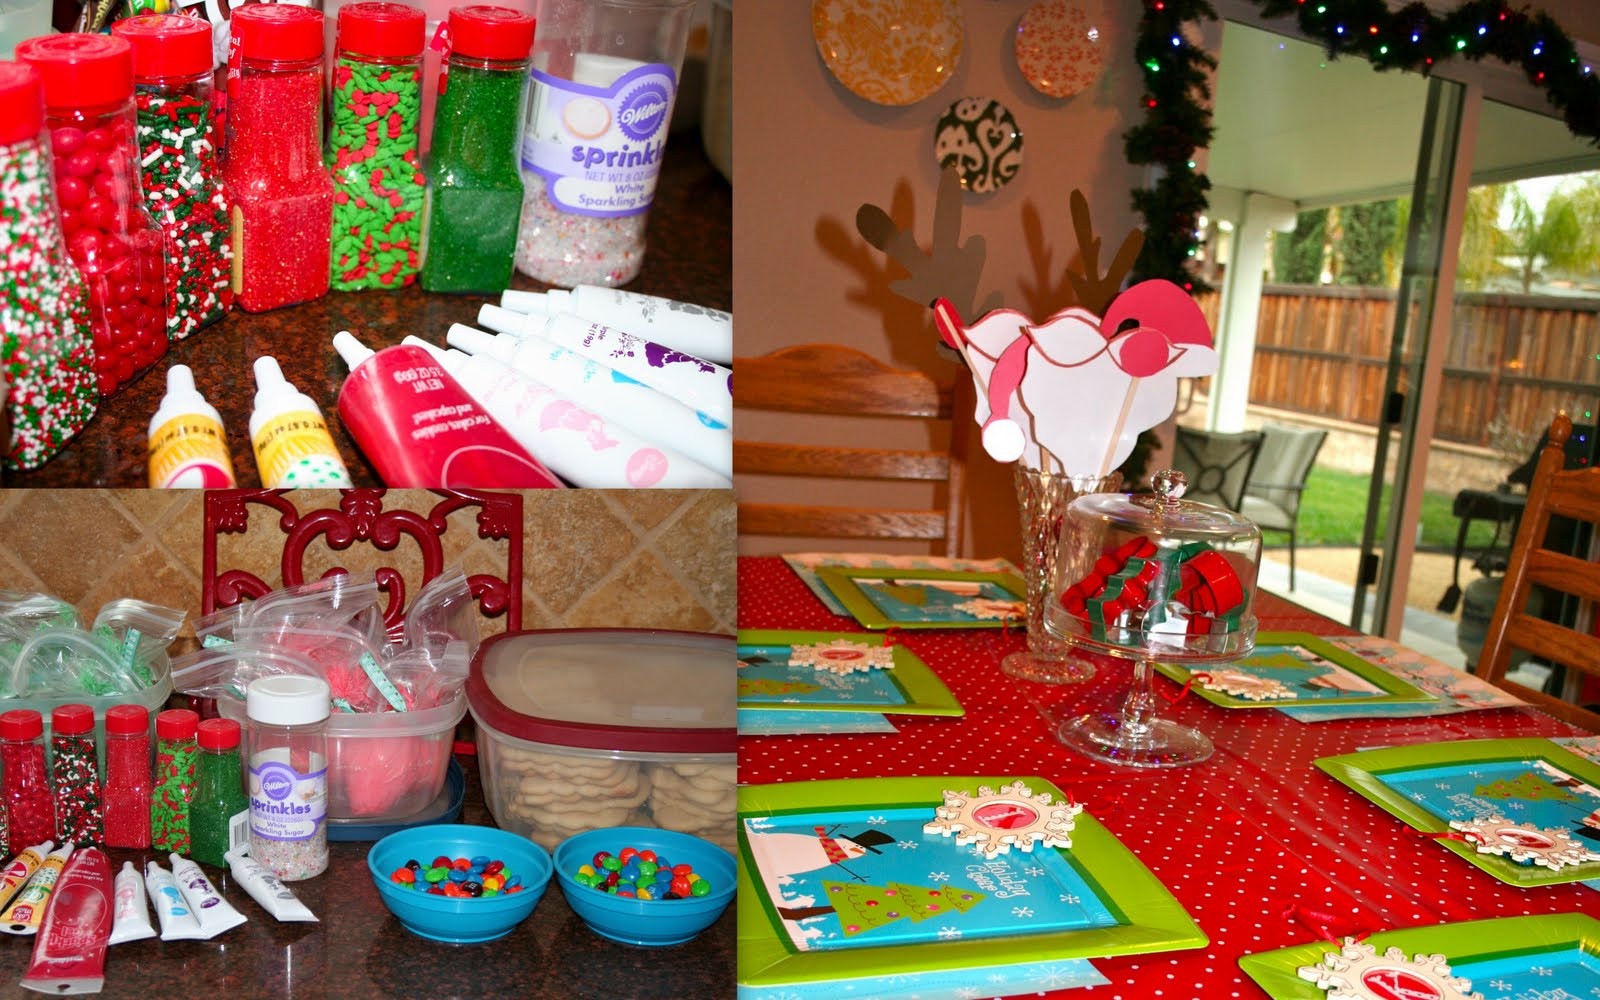 Christmas Cookie Baking Party  The Savvy Moms Guide How Savvy Are They A Holiday